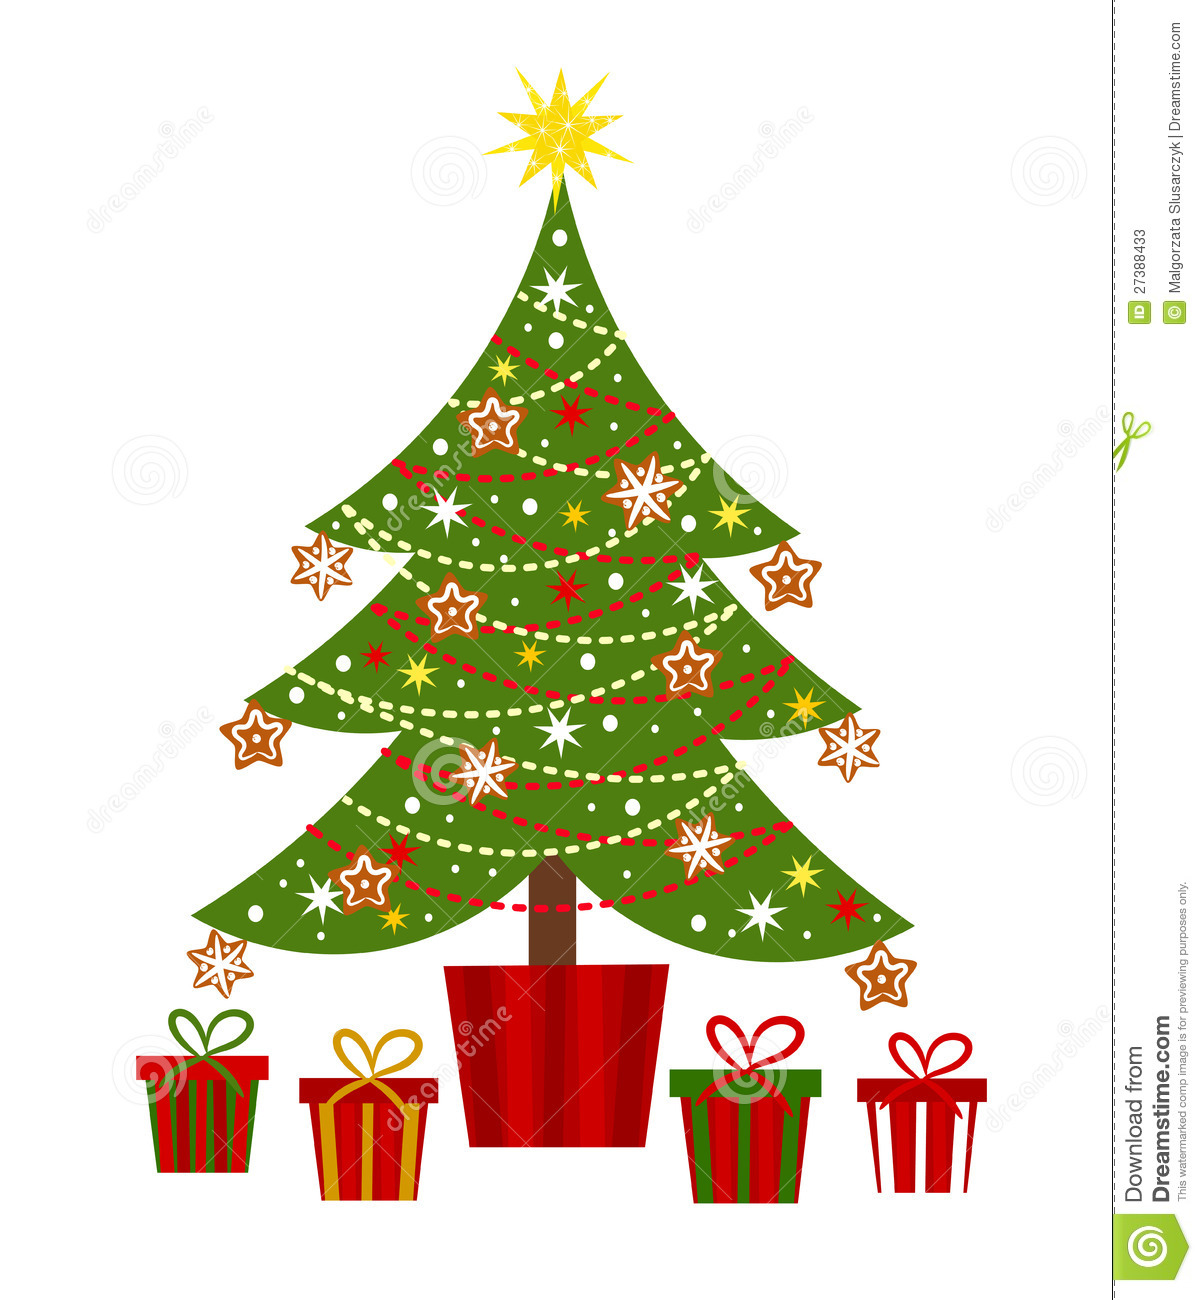 Christmas Tree And Presents Stock Vector Illustration Of Green